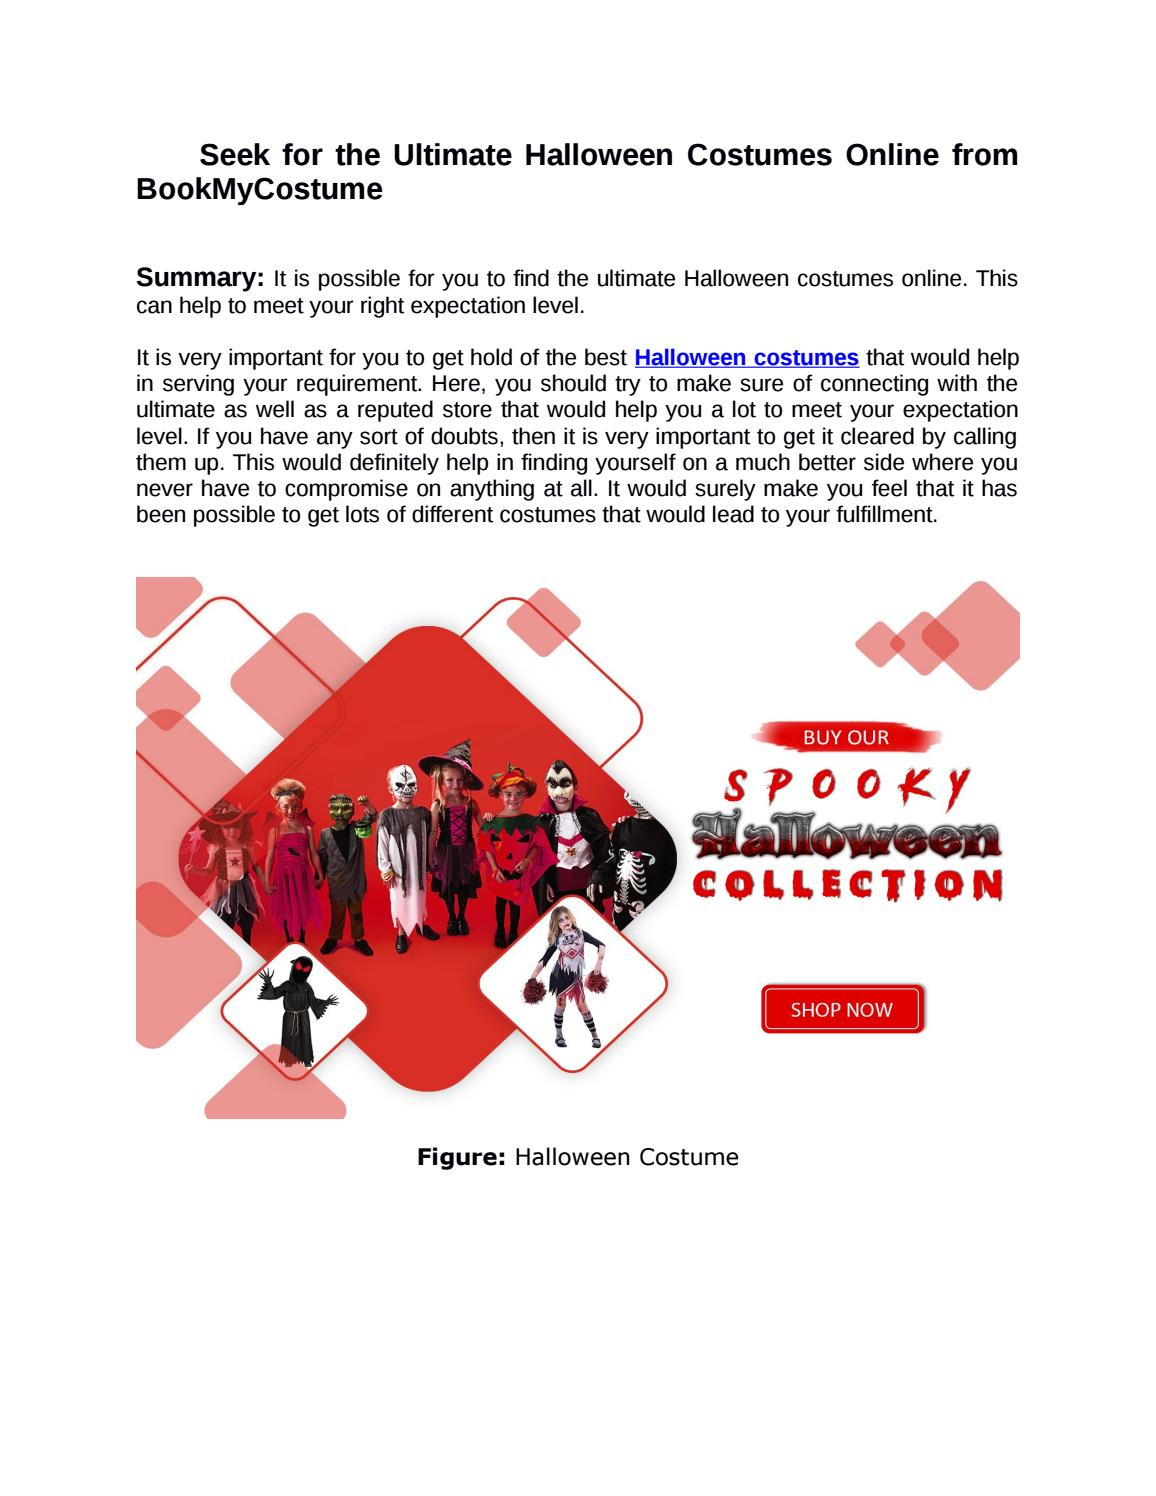 Seek For The Ultimate Halloween Costumes Online From Bookmycostume By Bookmycostume Dress Fancy Issuu